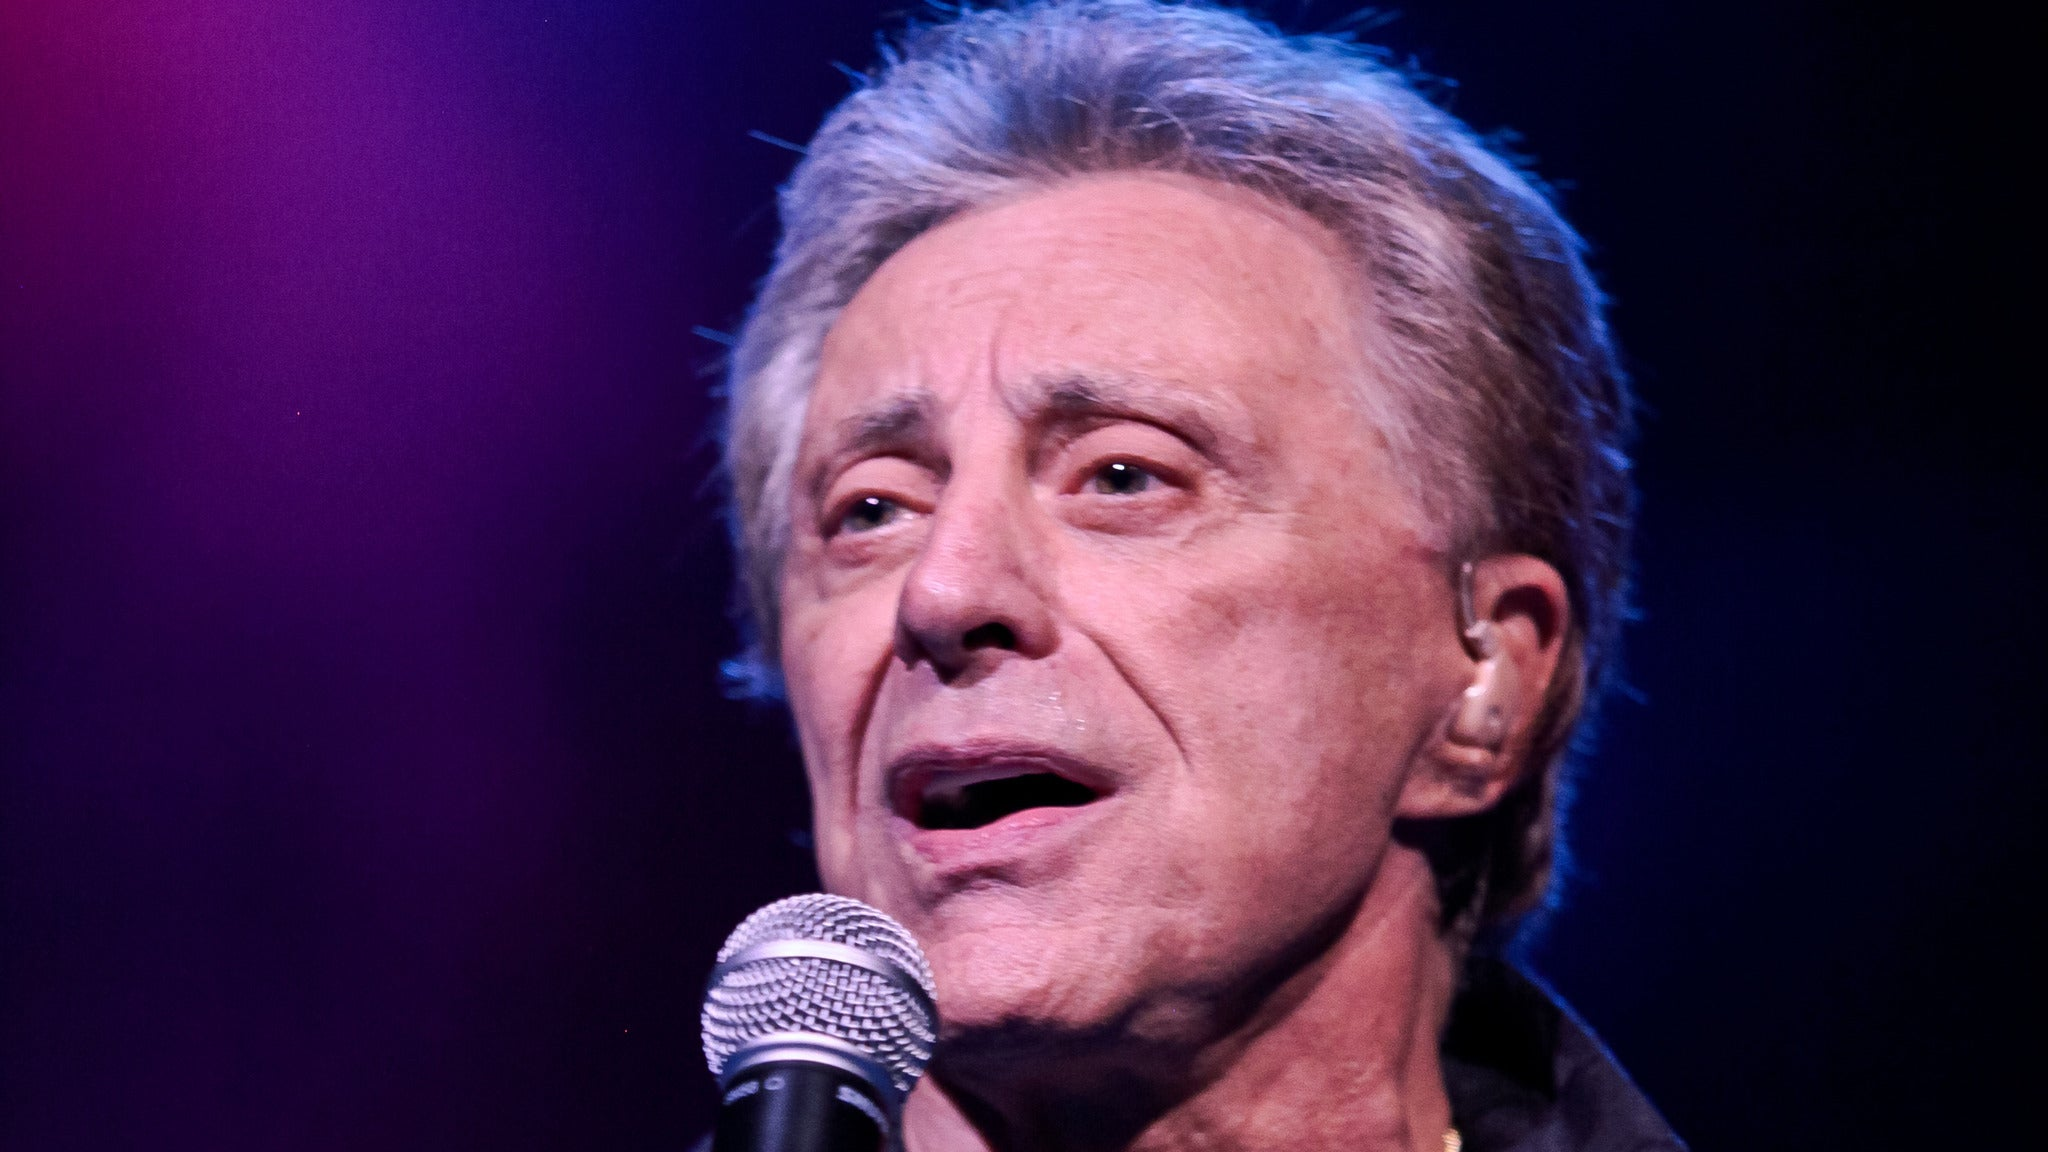 Frankie Valli & the Four Seasons at Hard Rock Live